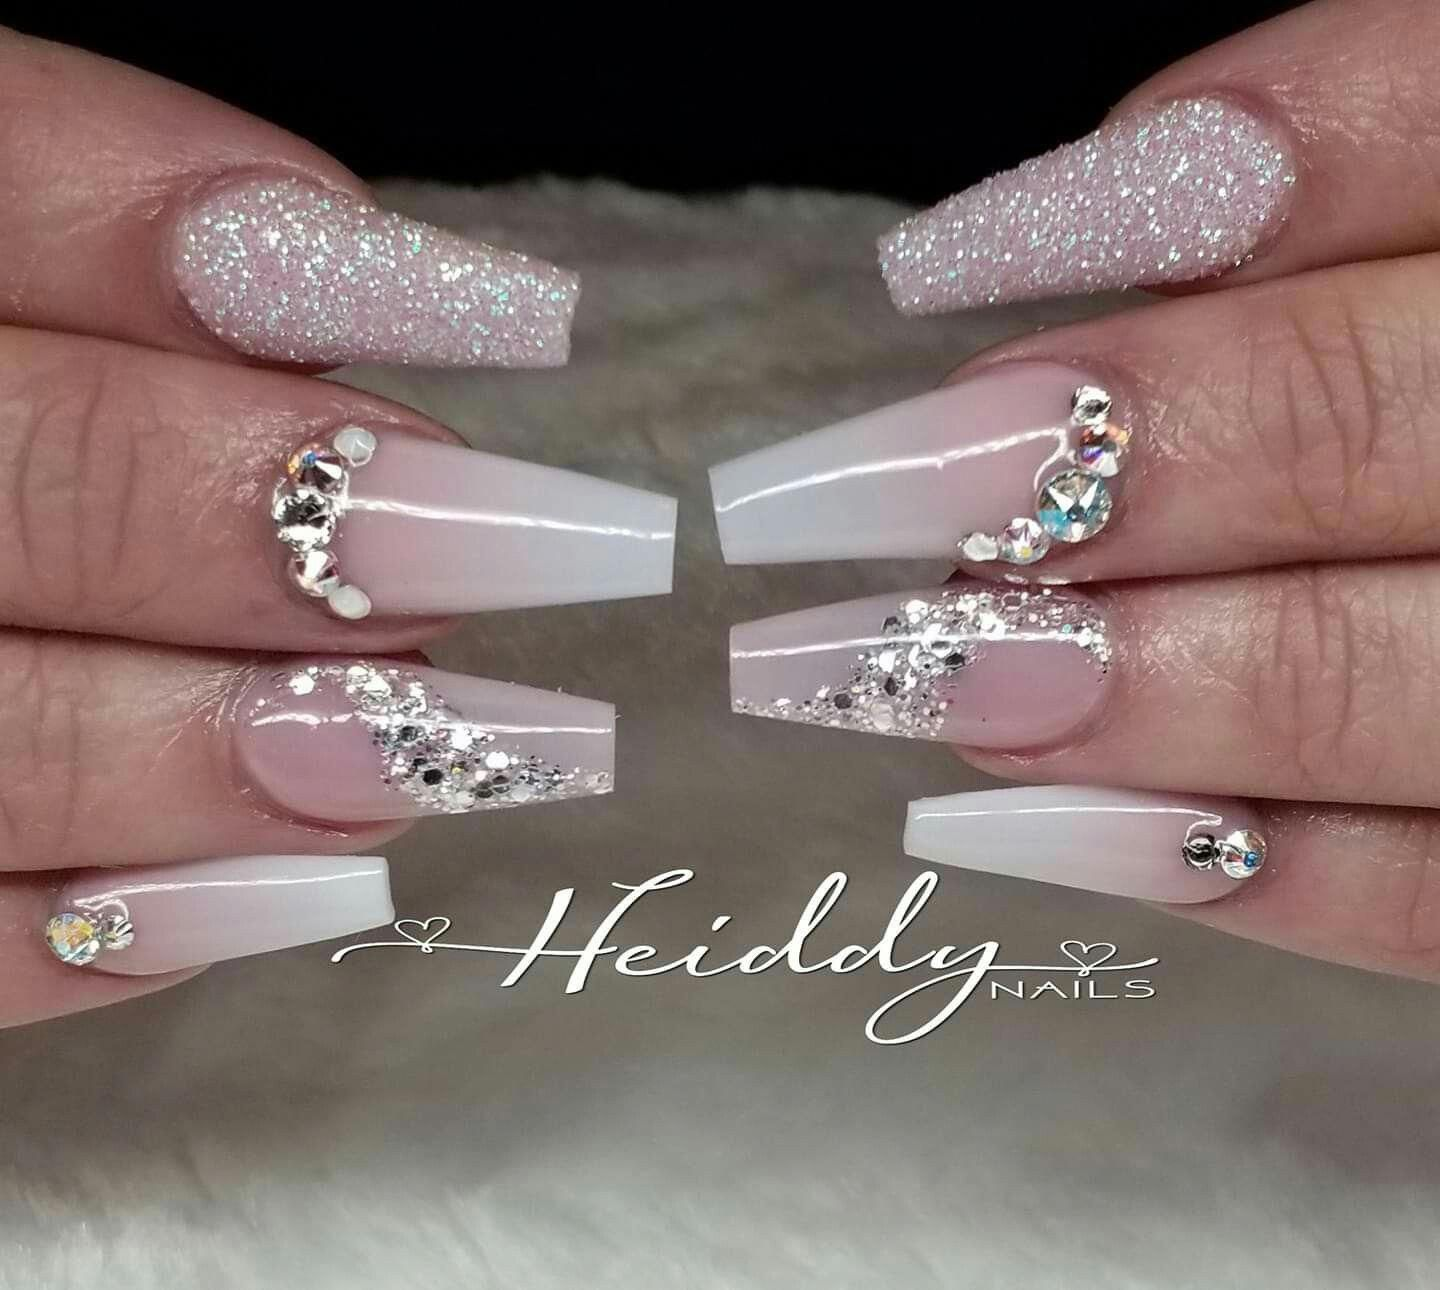 Cute French Nails Fun Frenchnailselegant Quinceanera Nails Nails Design With Rhinestones Diamond Nails